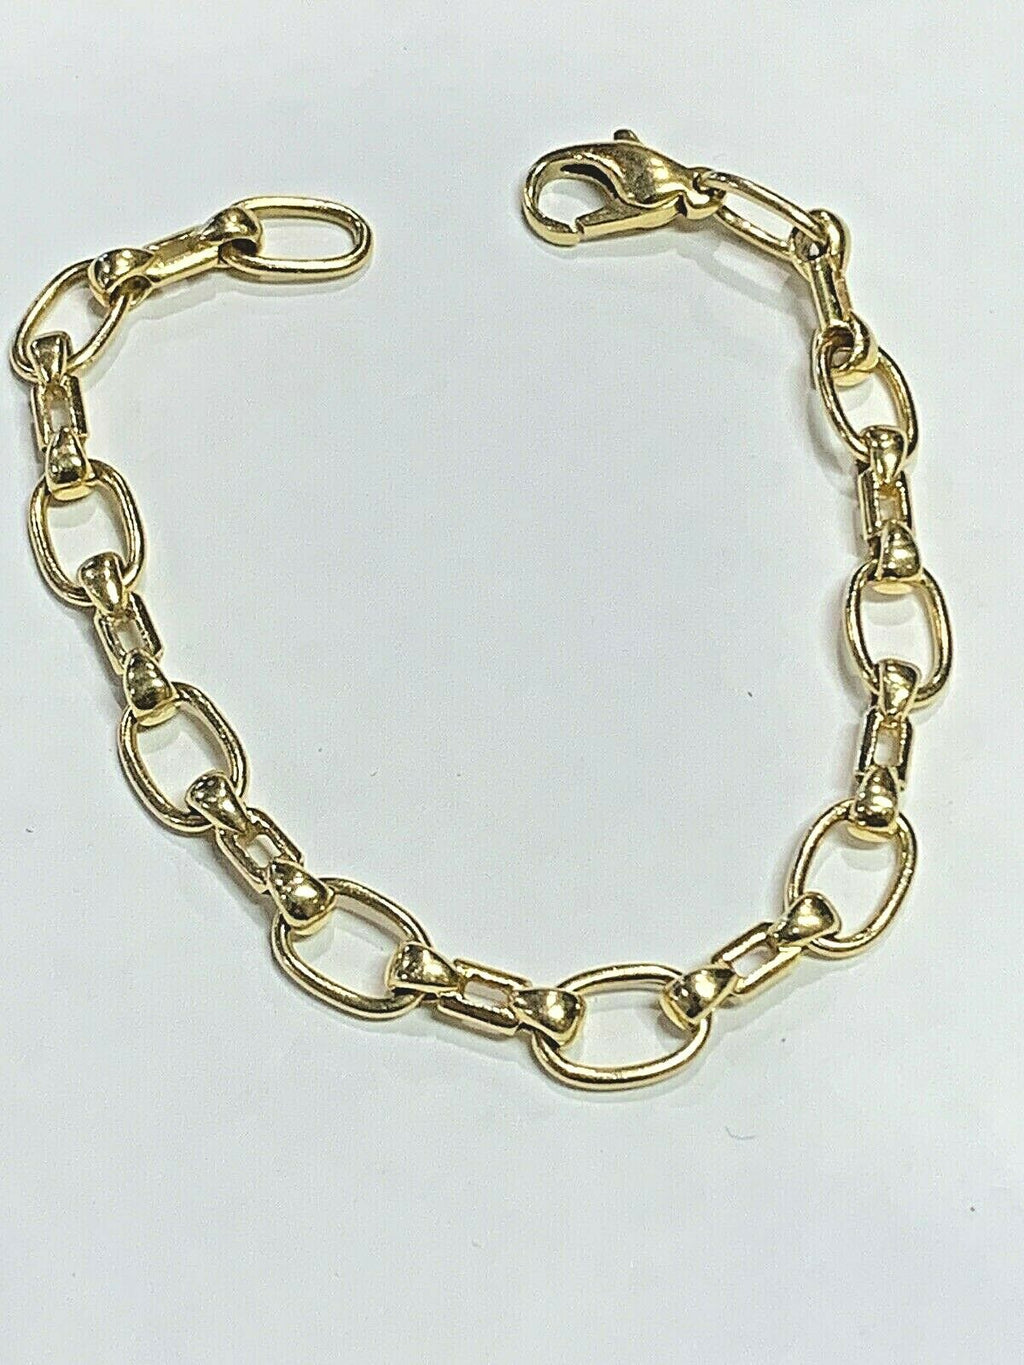 18k (.750) Gold Ladies Bracelet 16.8 grams - 7.5 inch - 8mm